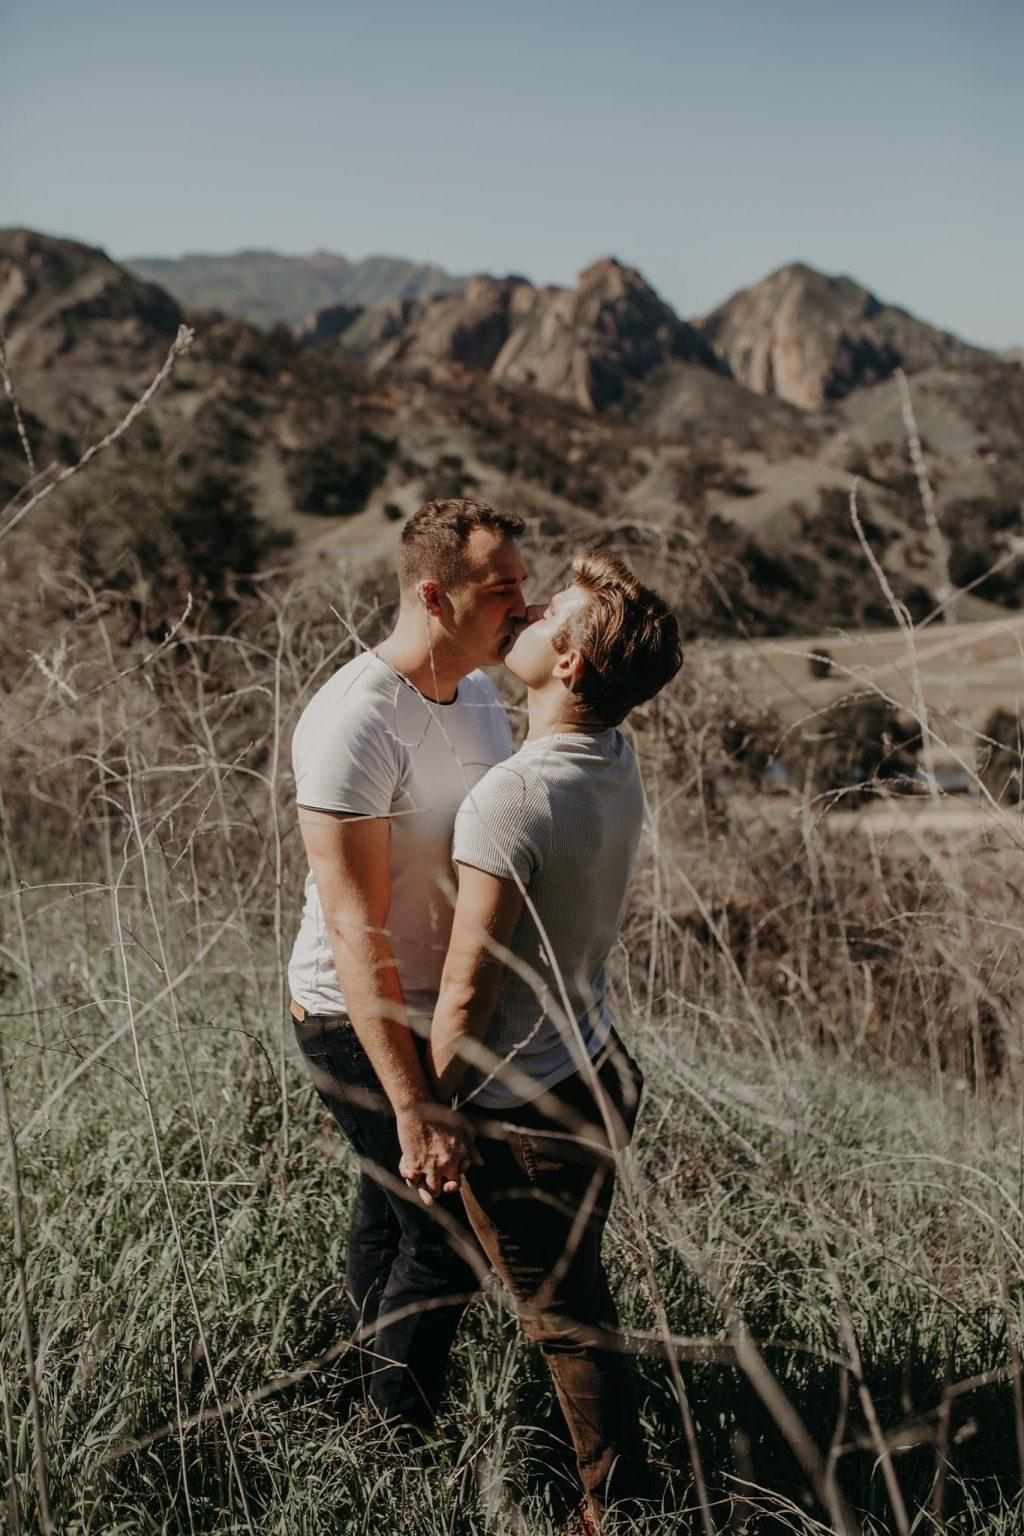 Knight and Clayton kiss in the mountains at Malibu Creek State Park for their engagement photos in February. Knight said they hope to inspire acceptance for all queer people and normalize the queer community in society.